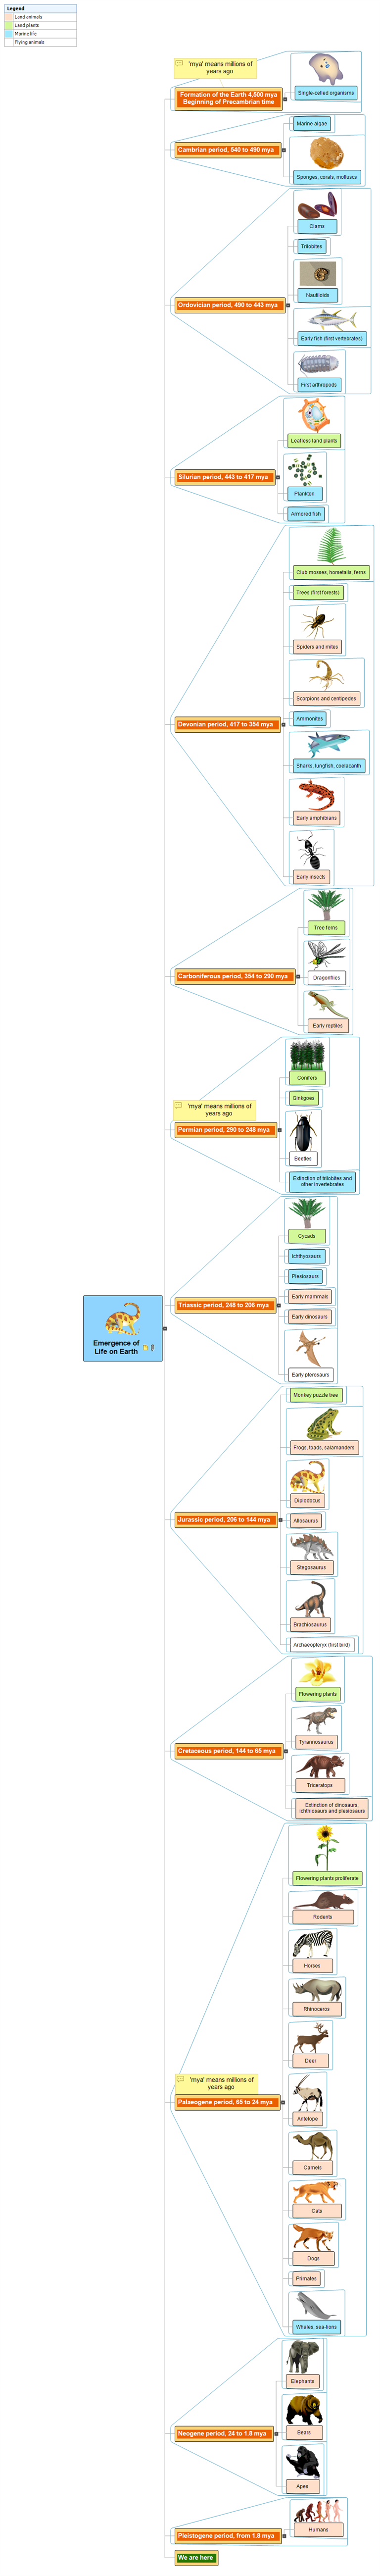 Emergence of Life on Earth Mind Map